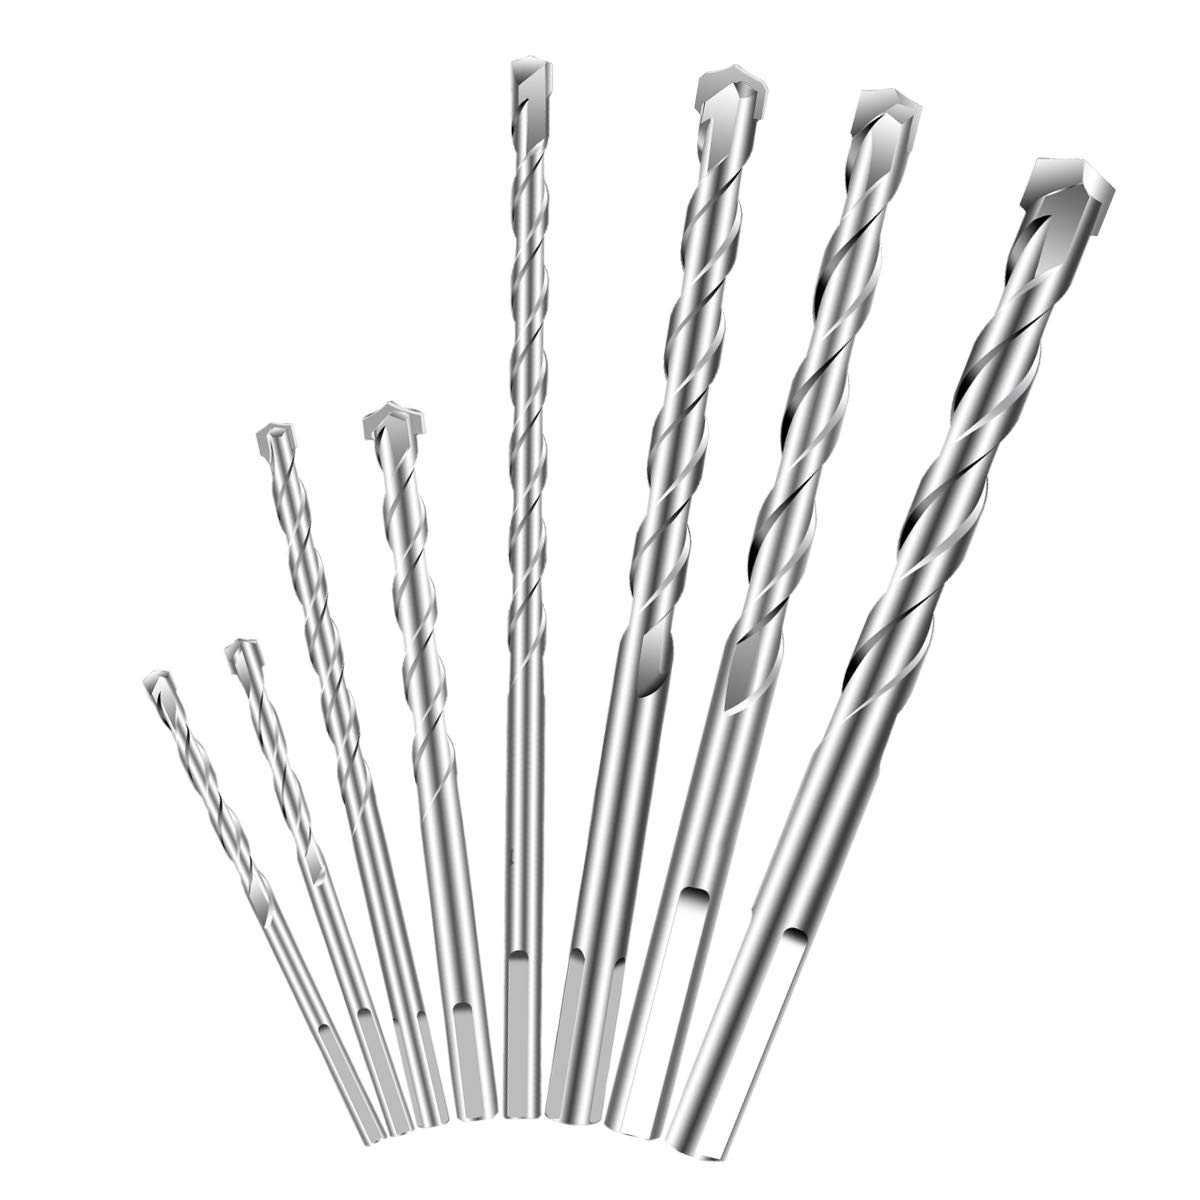 Masonry Drill Bits Set (8-piece) for Concrete, Brick, Cement, Plastic and Wood, Carbide Tip and Round Shank by Vicnunu